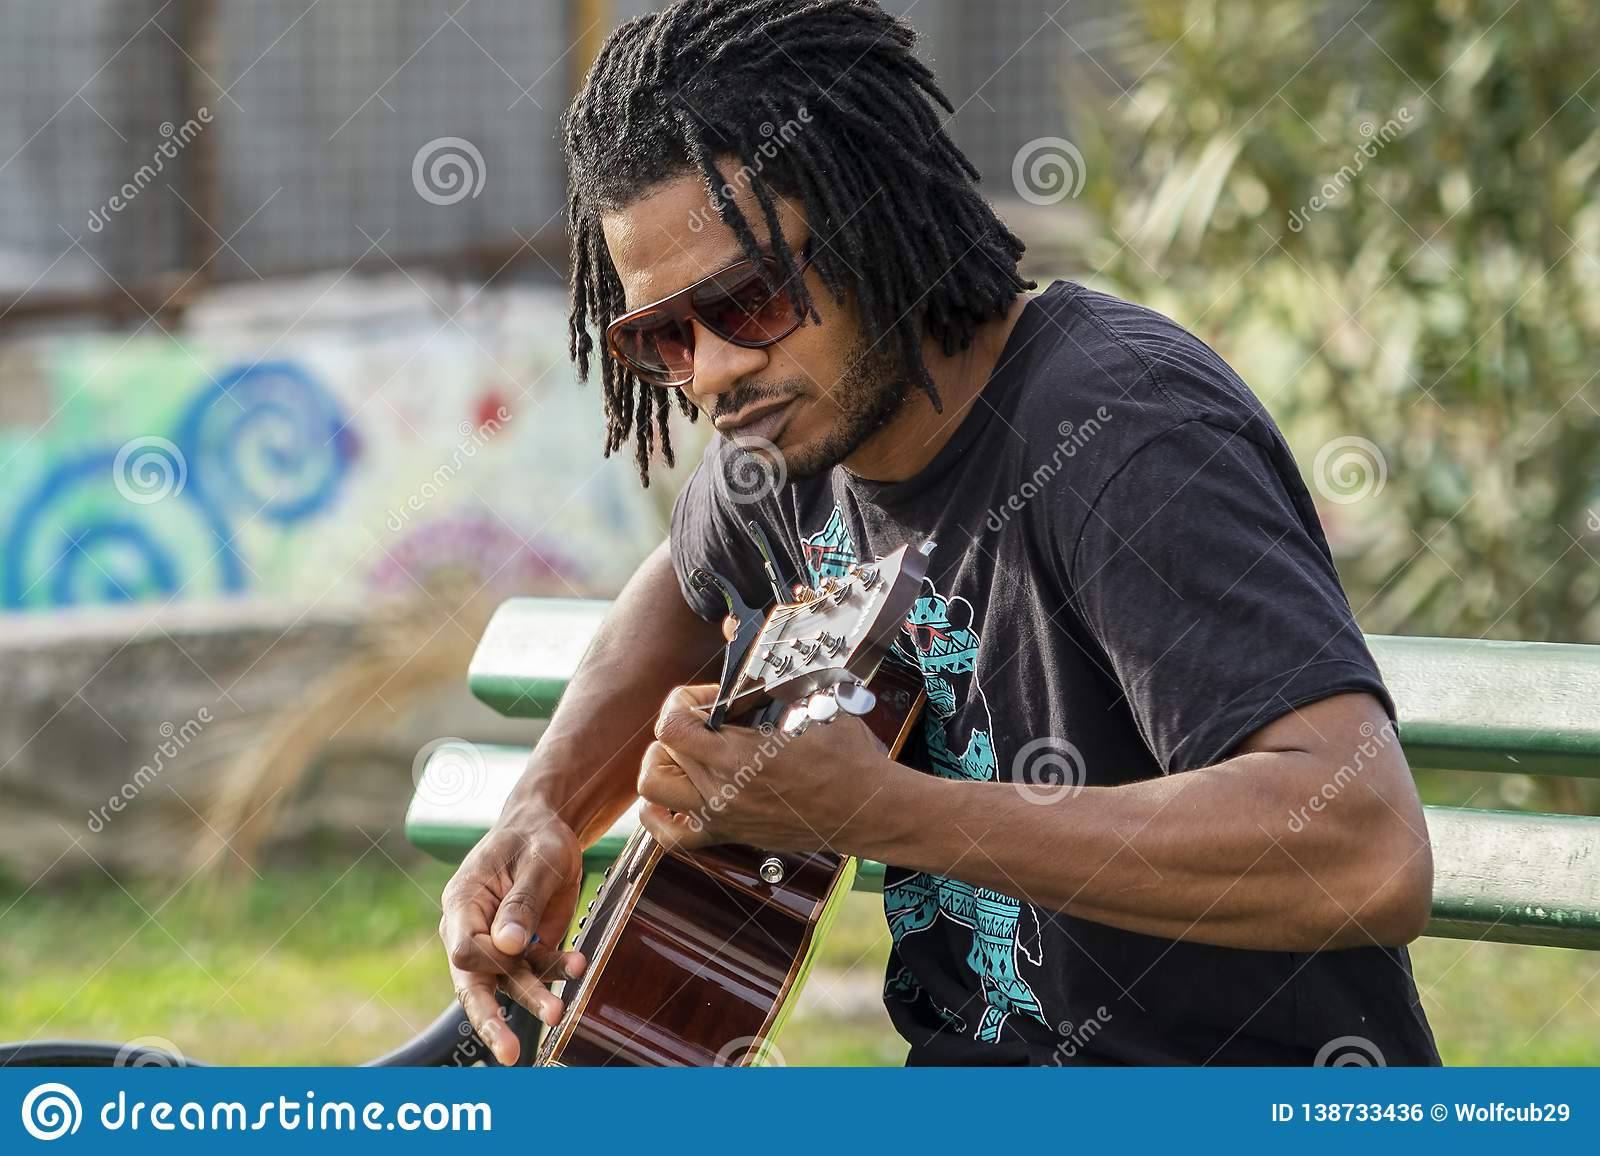 Black Guy With Dreadlocks Is Playing Guitar And Singing Editorial Photo Image Of Player Instrument 138733436